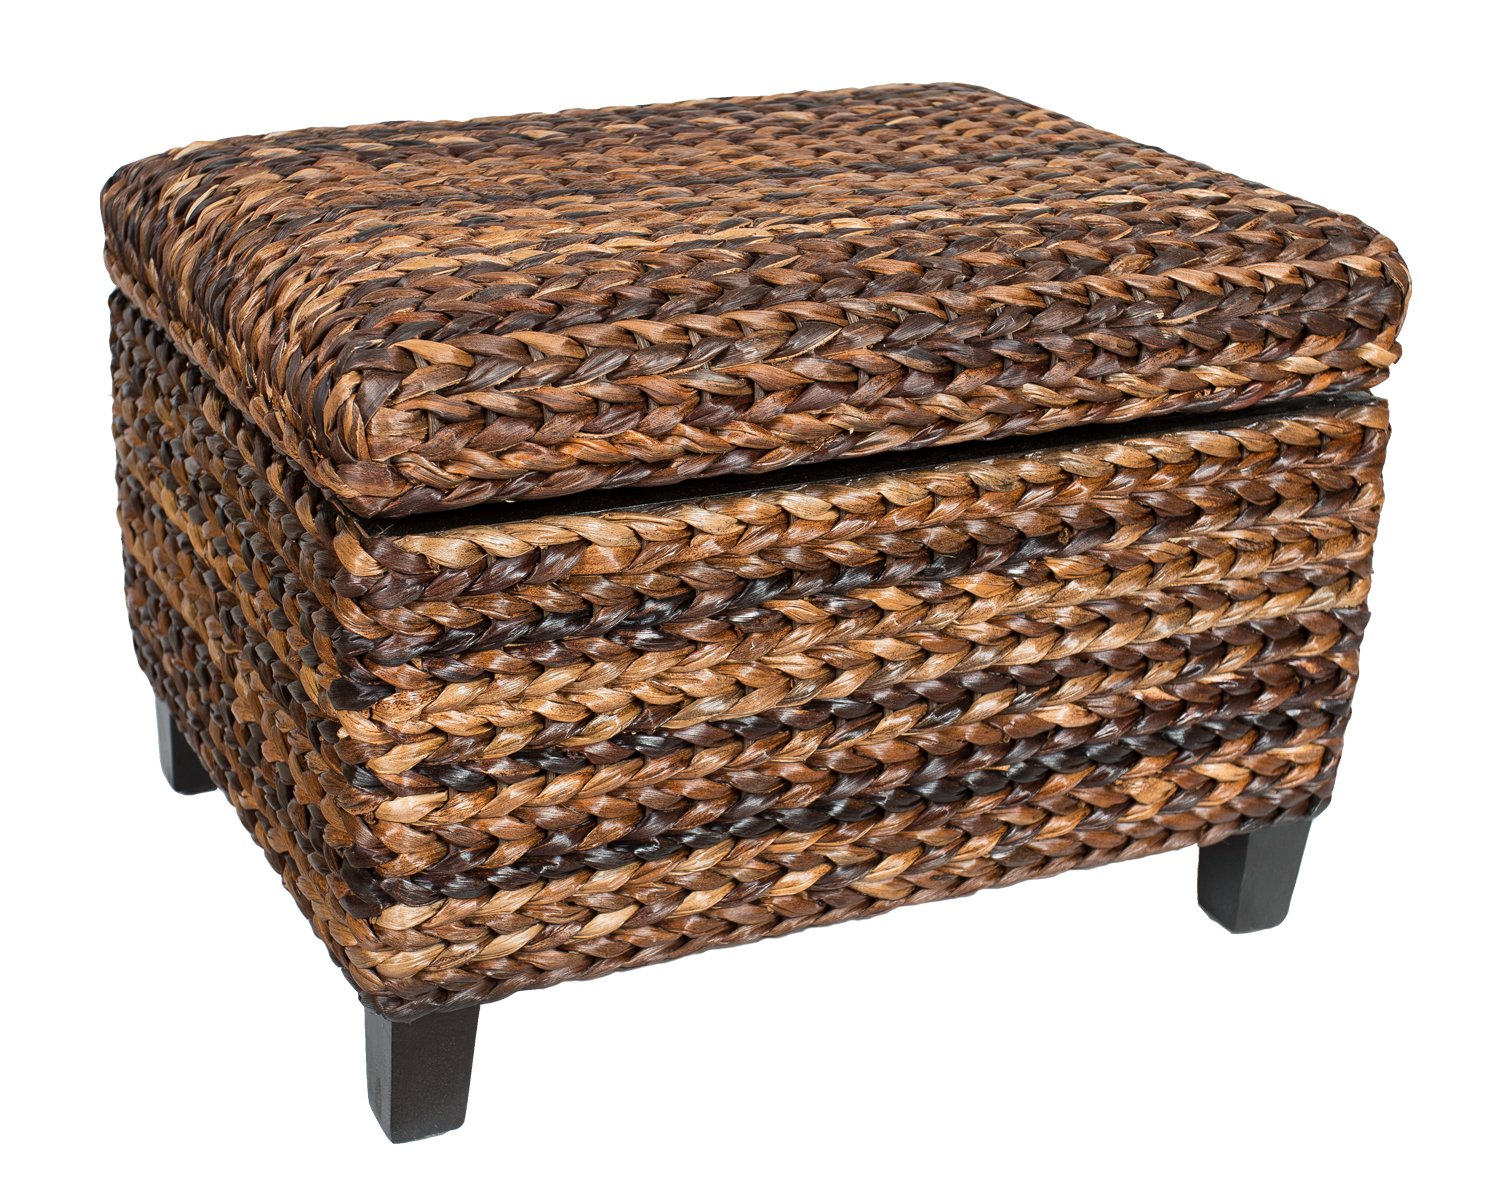 Amazon.com: BirdRock Home Woven Seagrass Storage Ottoman | With Safety  Hinges: Kitchen & Dining - Amazon.com: BirdRock Home Woven Seagrass Storage Ottoman With